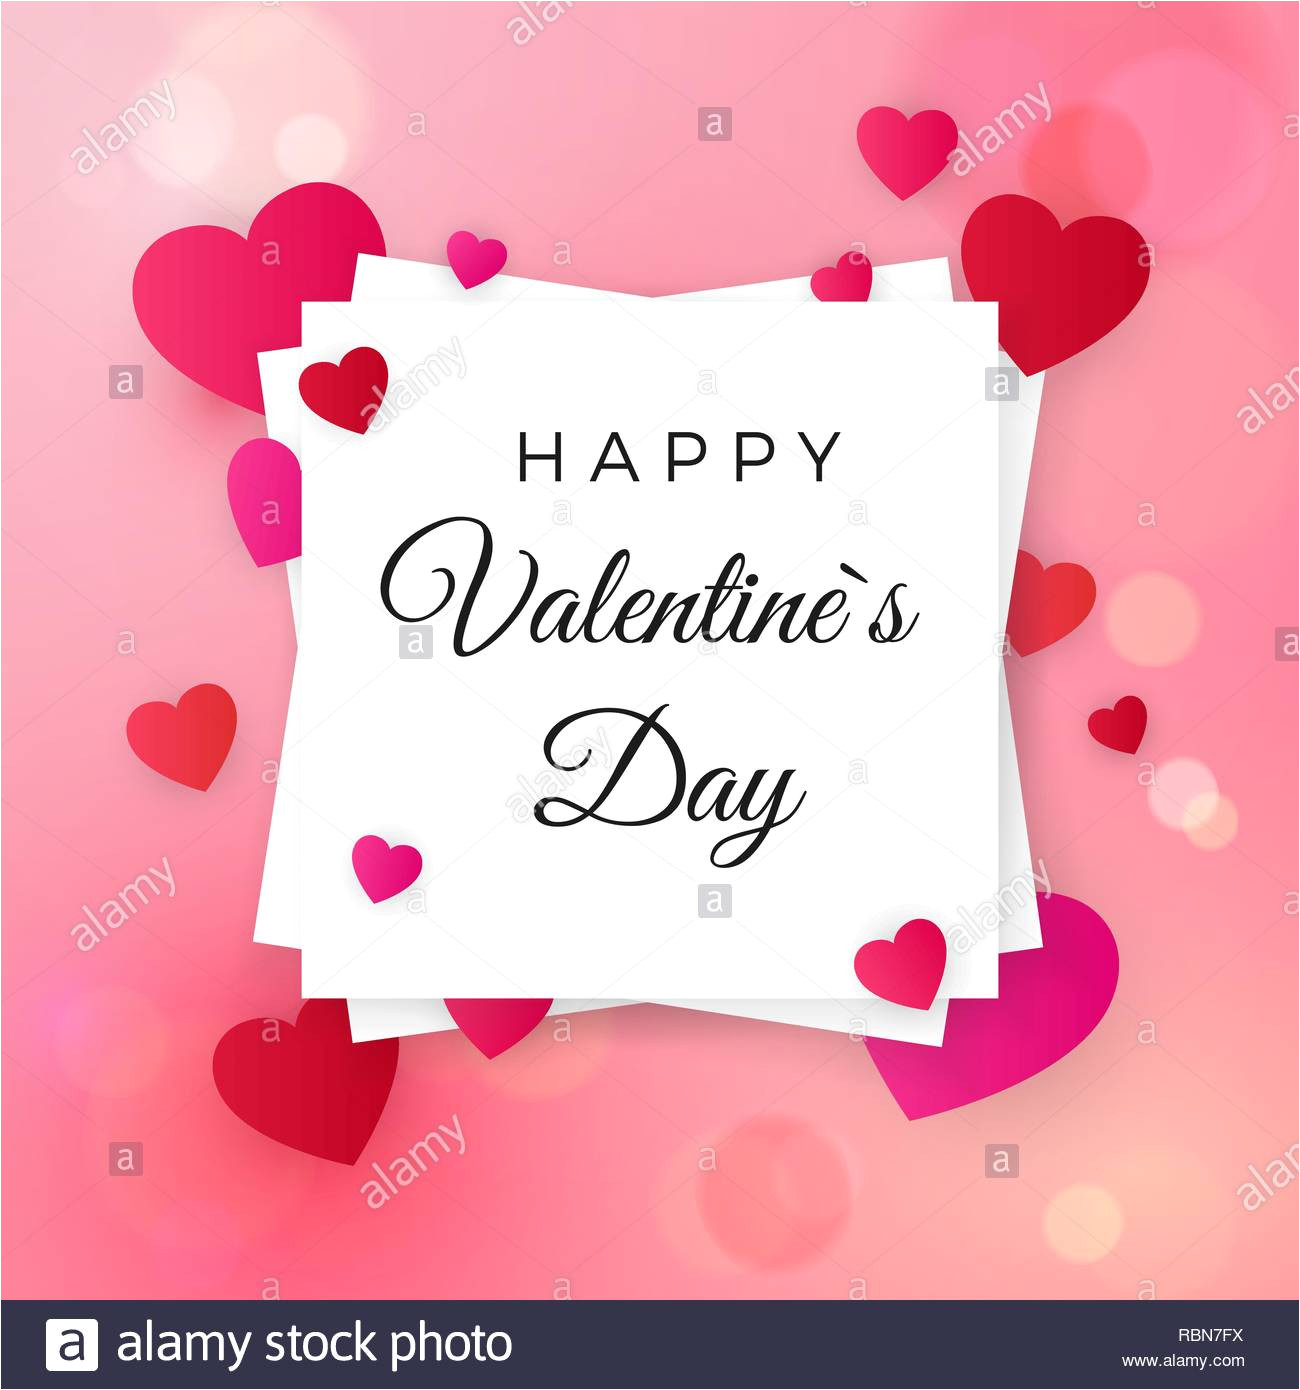 Happy Valentine Day Card with Name Happy Valentines Day and Wedding Design Elements Greeting